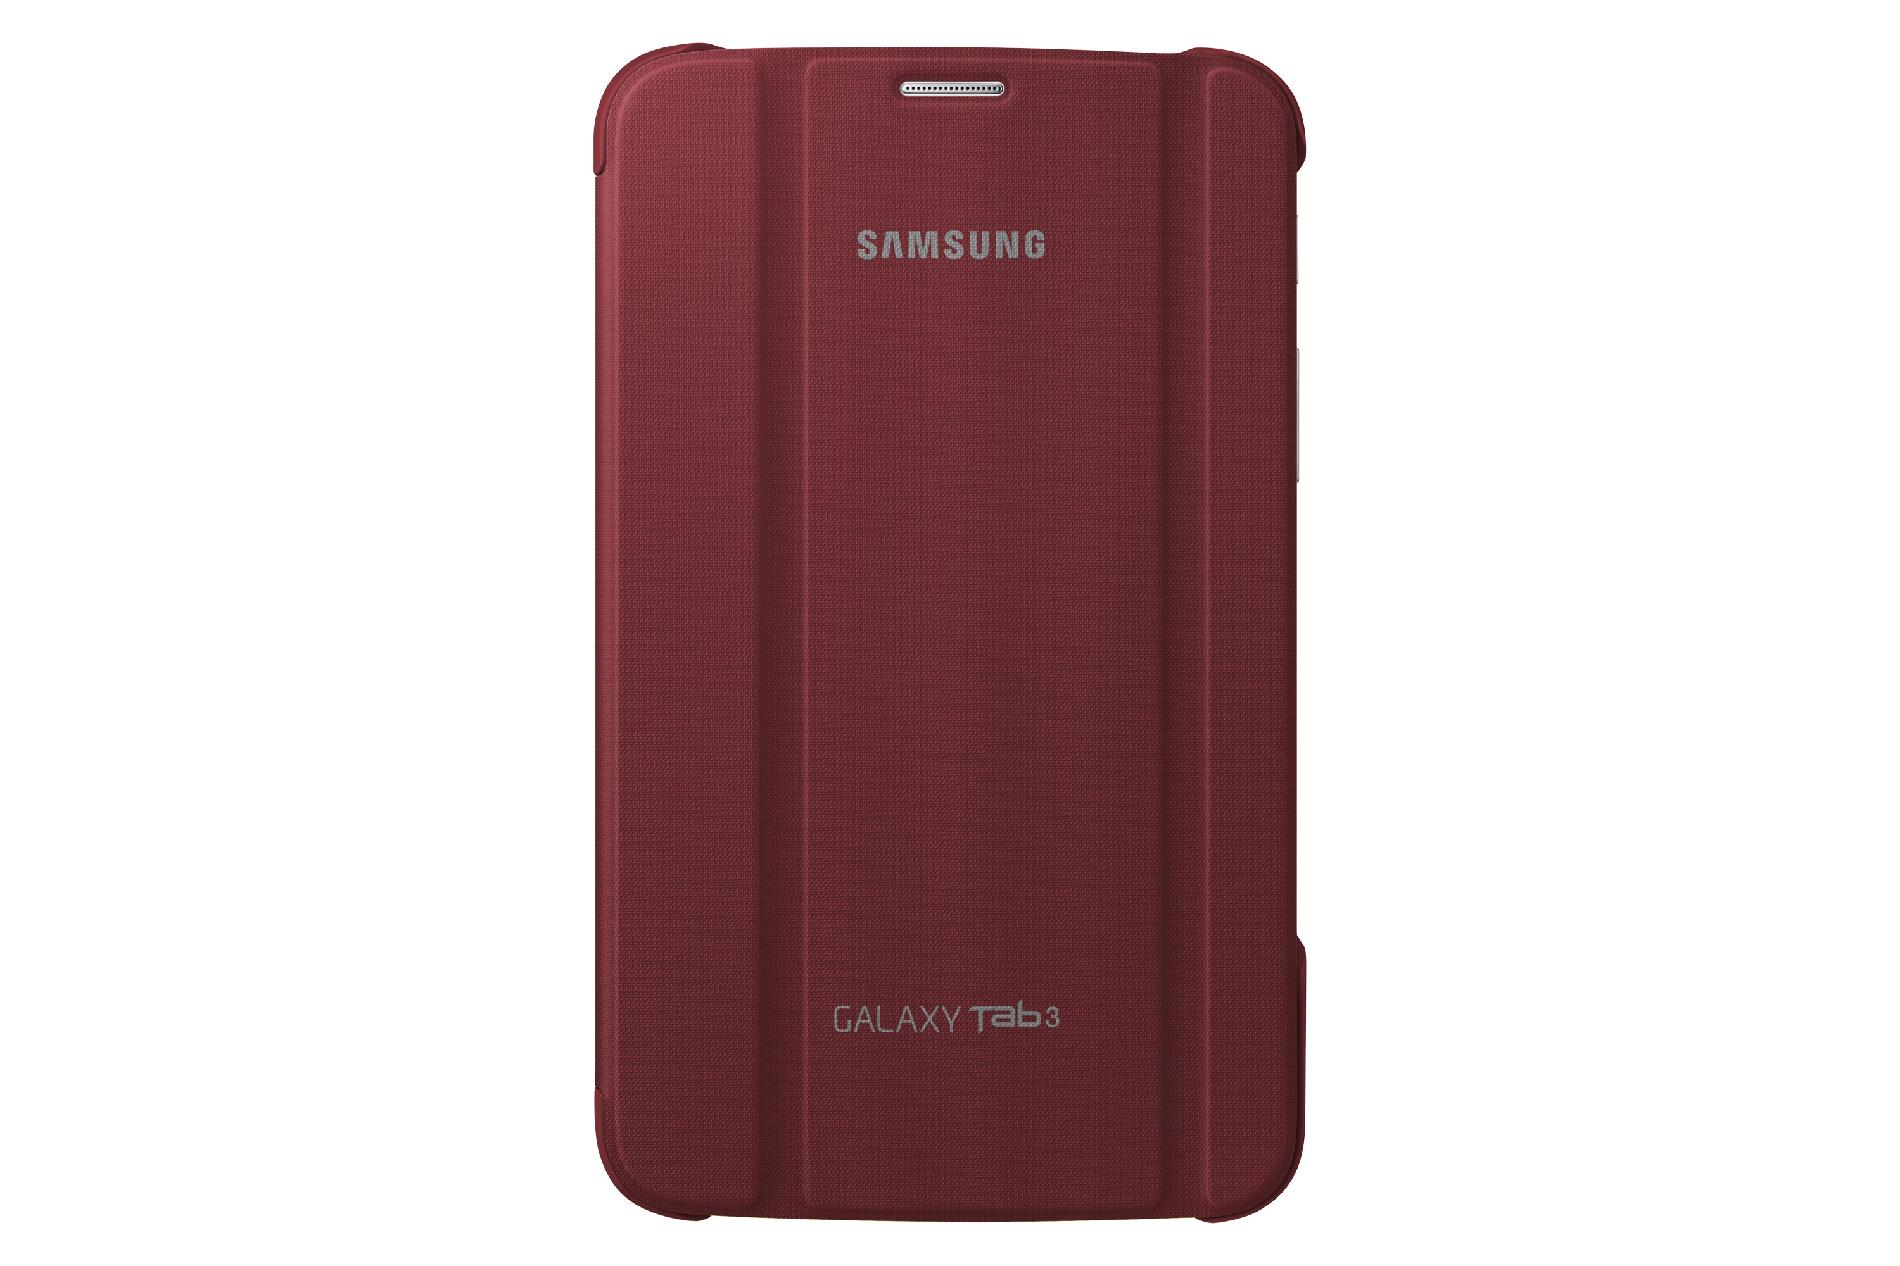 Samsung Galaxy Tab 3 7in Book Cover - Garnet Red PartNumber: 00343284000P KsnValue: 00343284000 MfgPartNumber: EF-BT210BREGUJ